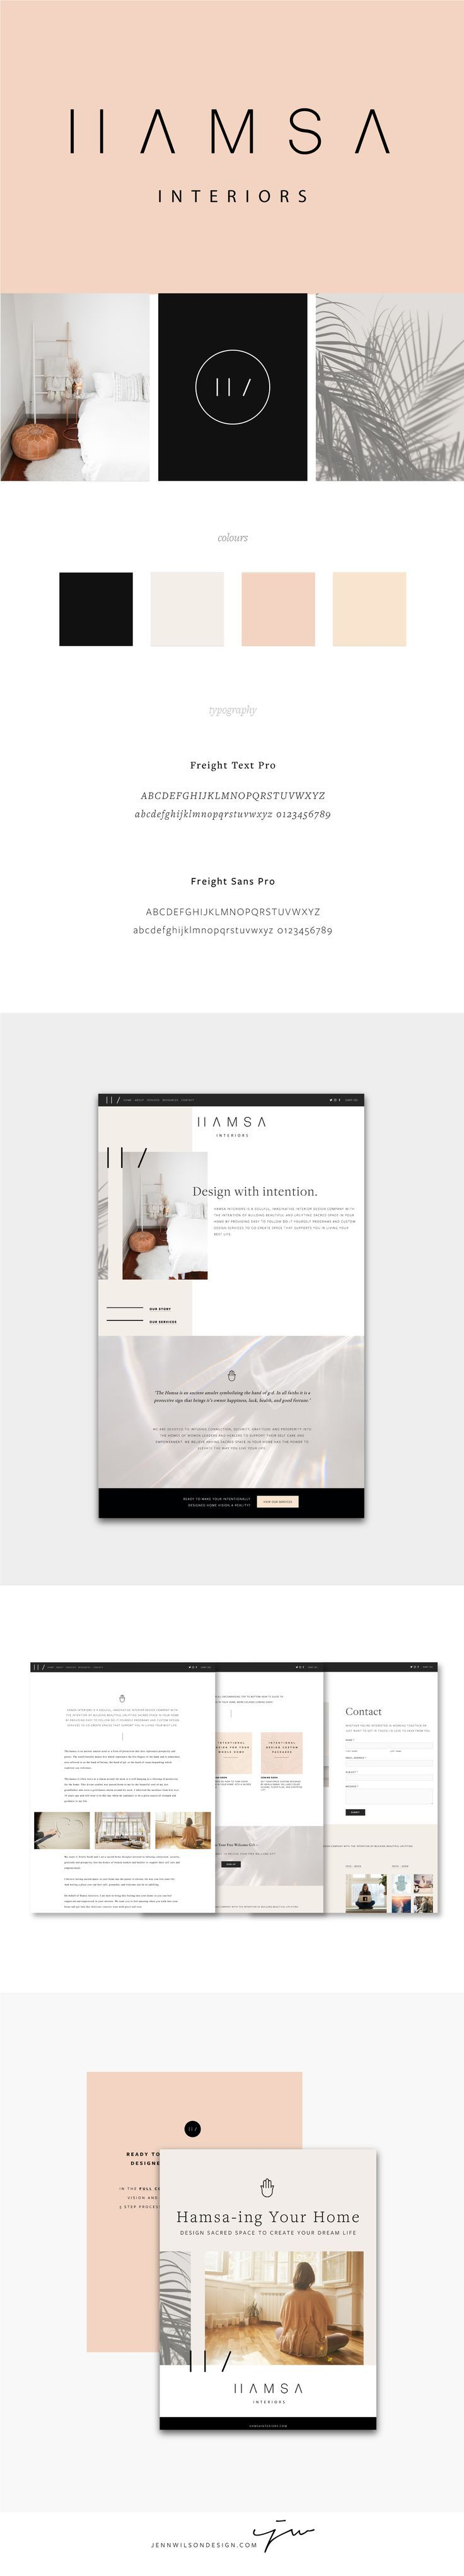 Great Brand Identity And Website Design For Hamsa Interiors // Clean, Minimalist  Design //